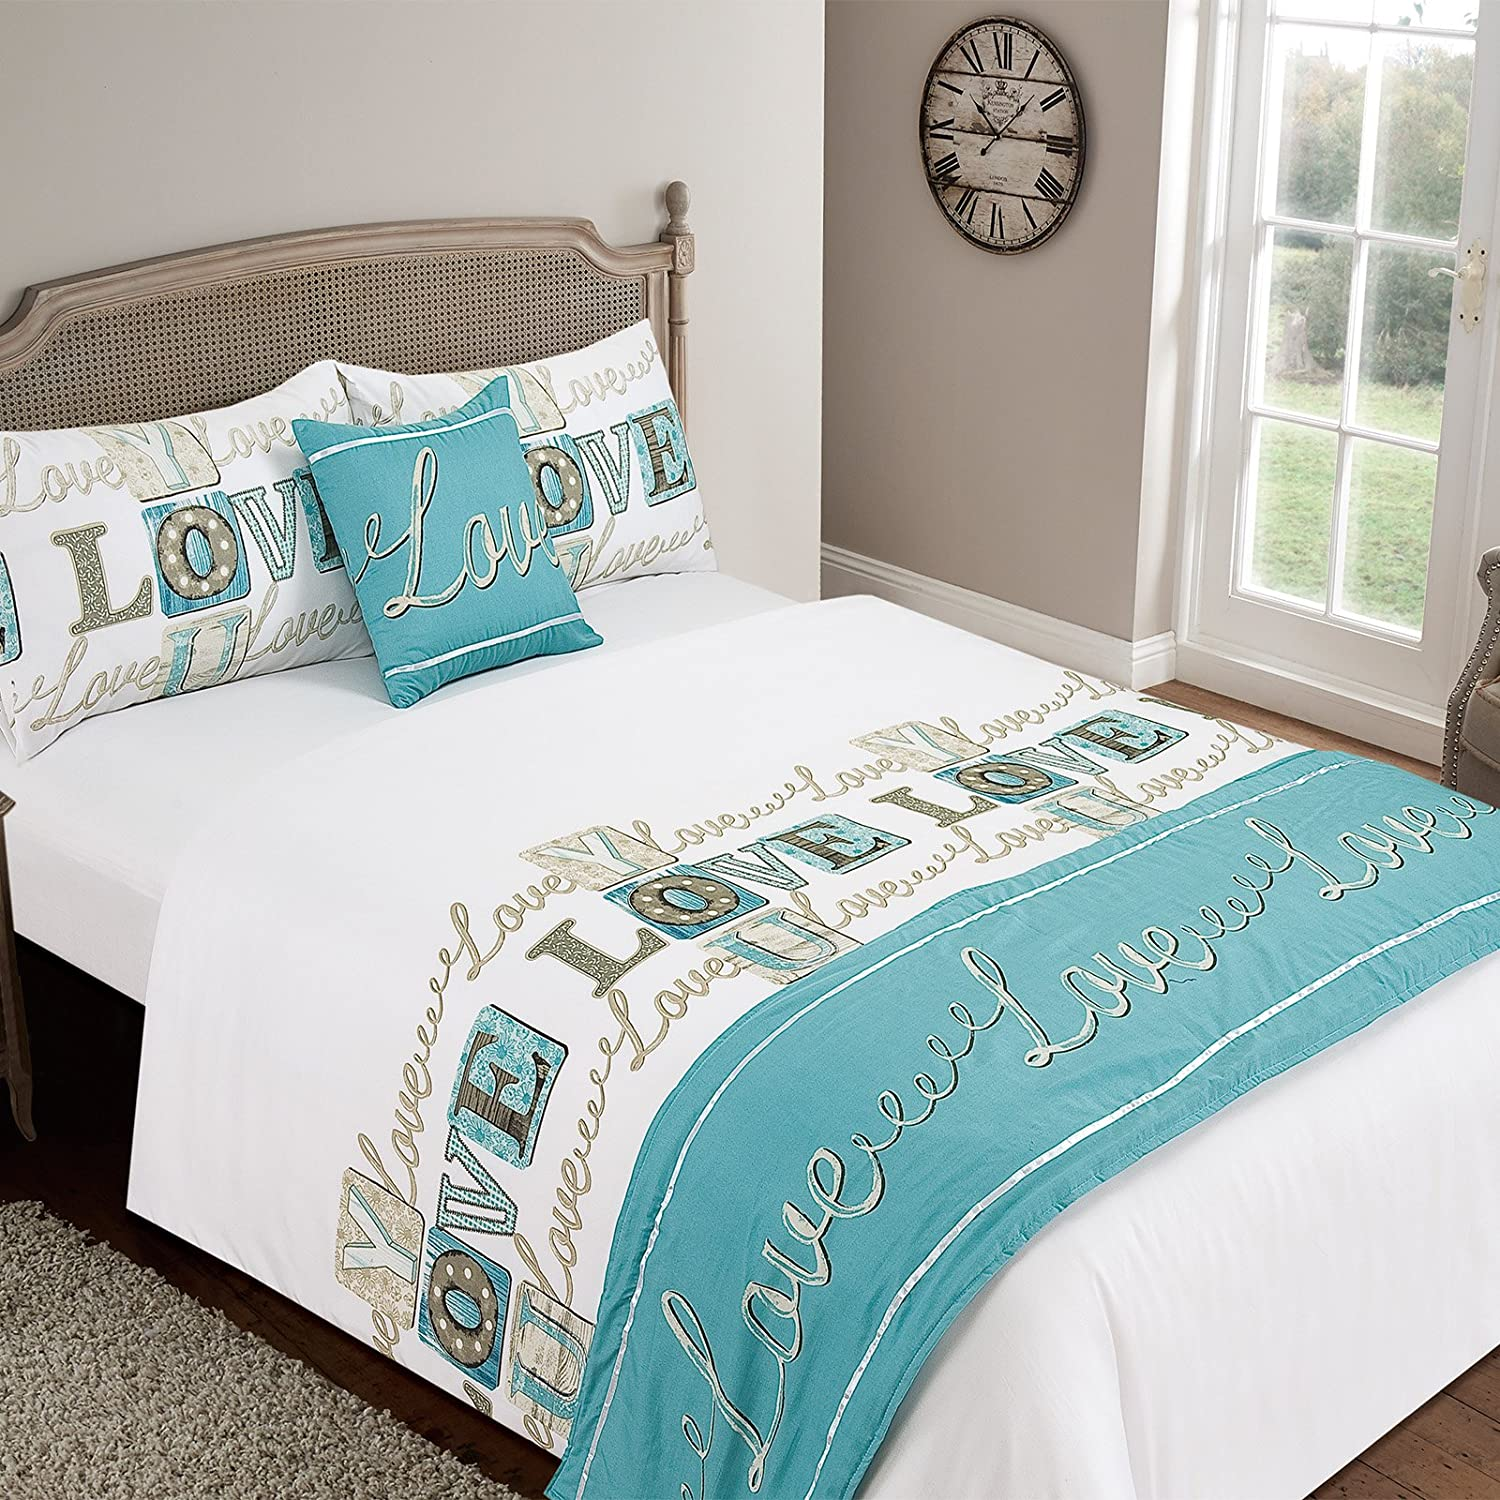 designer grey sets duvets quilt bed king green queen turquoise comforter flannel set bedspread cover mens blue cal size plaid and teal duvet with covers bedding california pretty